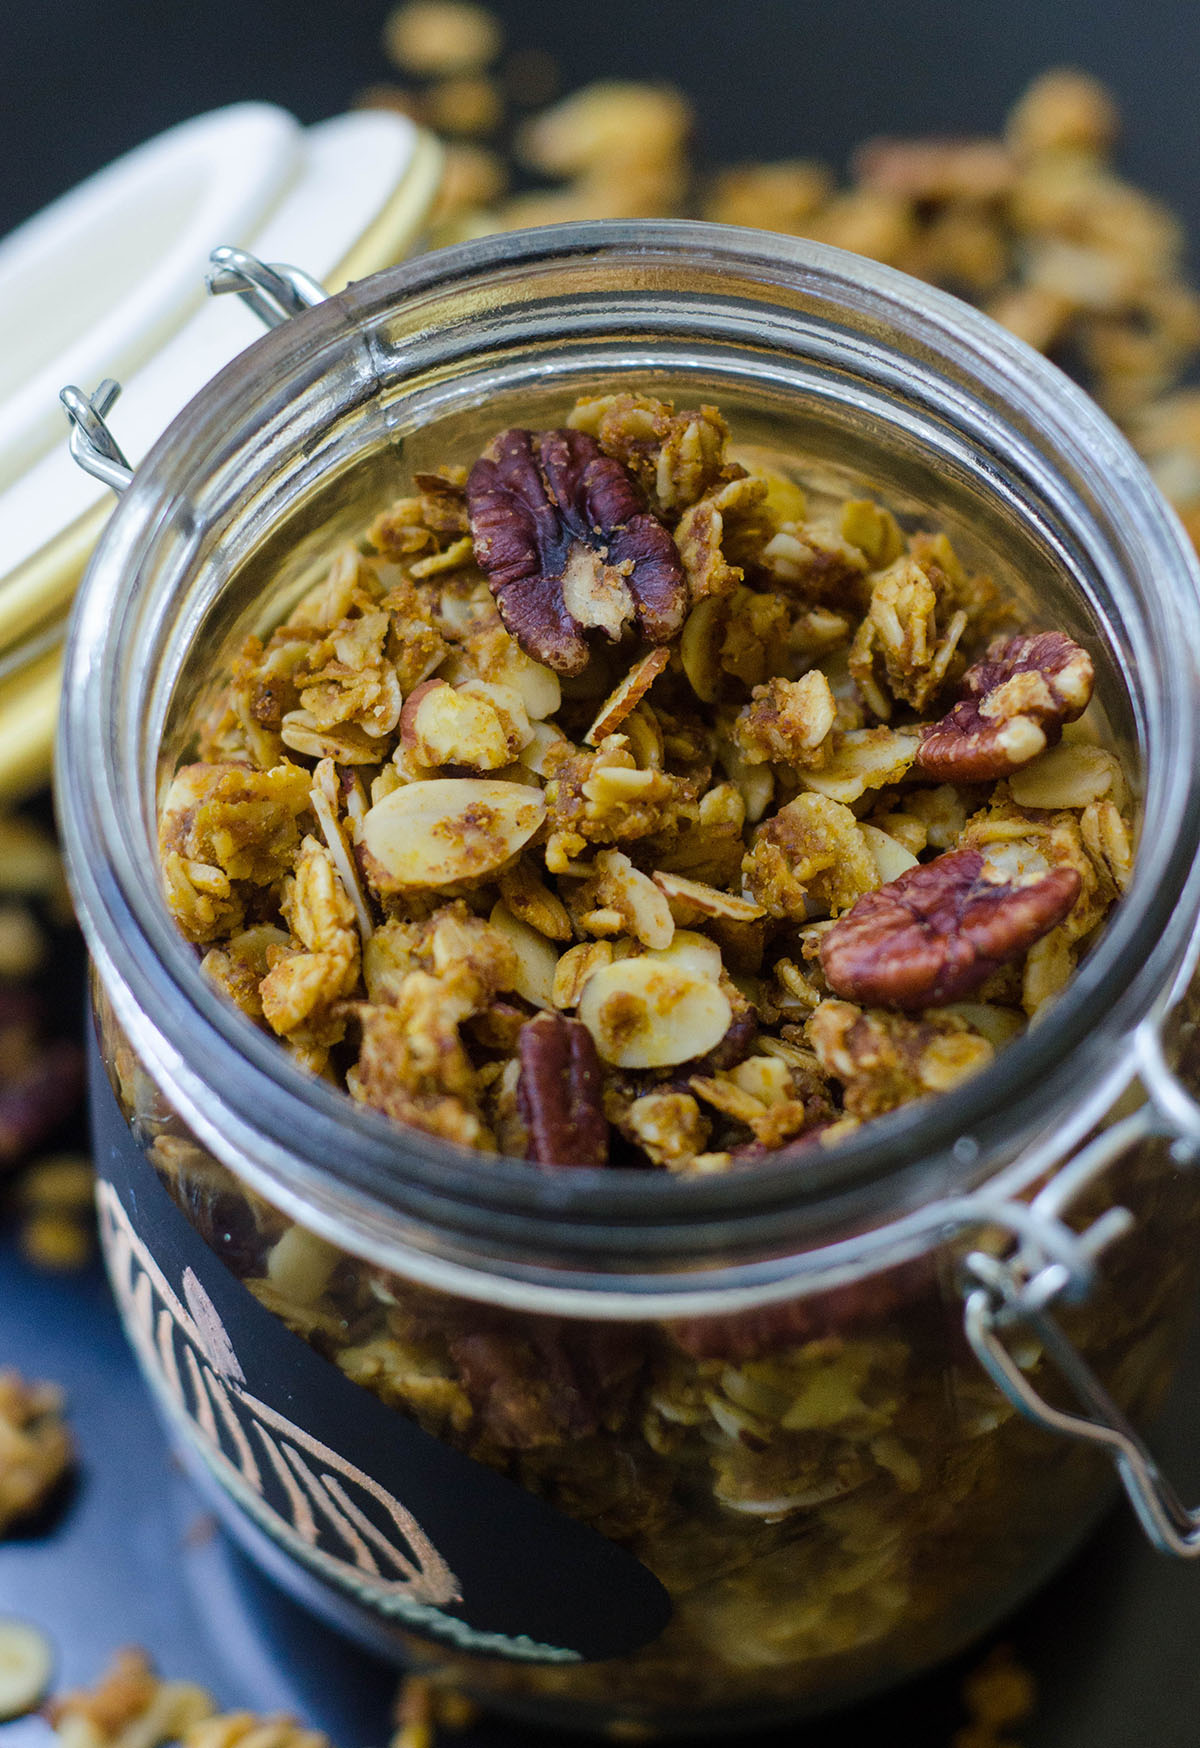 Soft-Baked Pumpkin Pie Granola: Homemade spiced granola gets a pumpkin flair thanks to real pumpkin, and sweetened with brown sugar and maple syrup. Not your ordinary crunchy granola-- this stuff is soft like pie!